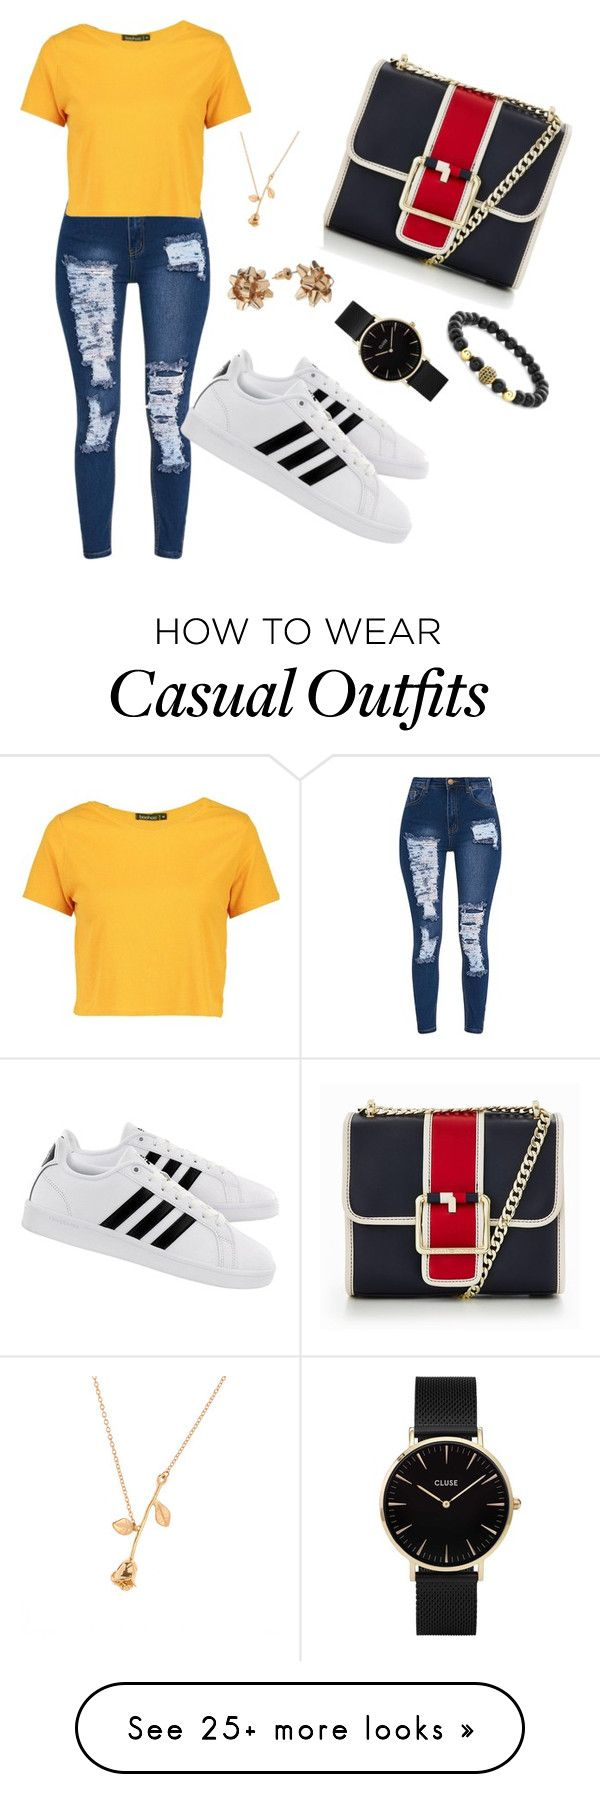 """""""Weekend Casual"""" by iamashabee on Polyvore featuring Boohoo, Tommy Hilfiger, adidas and CLUSE"""